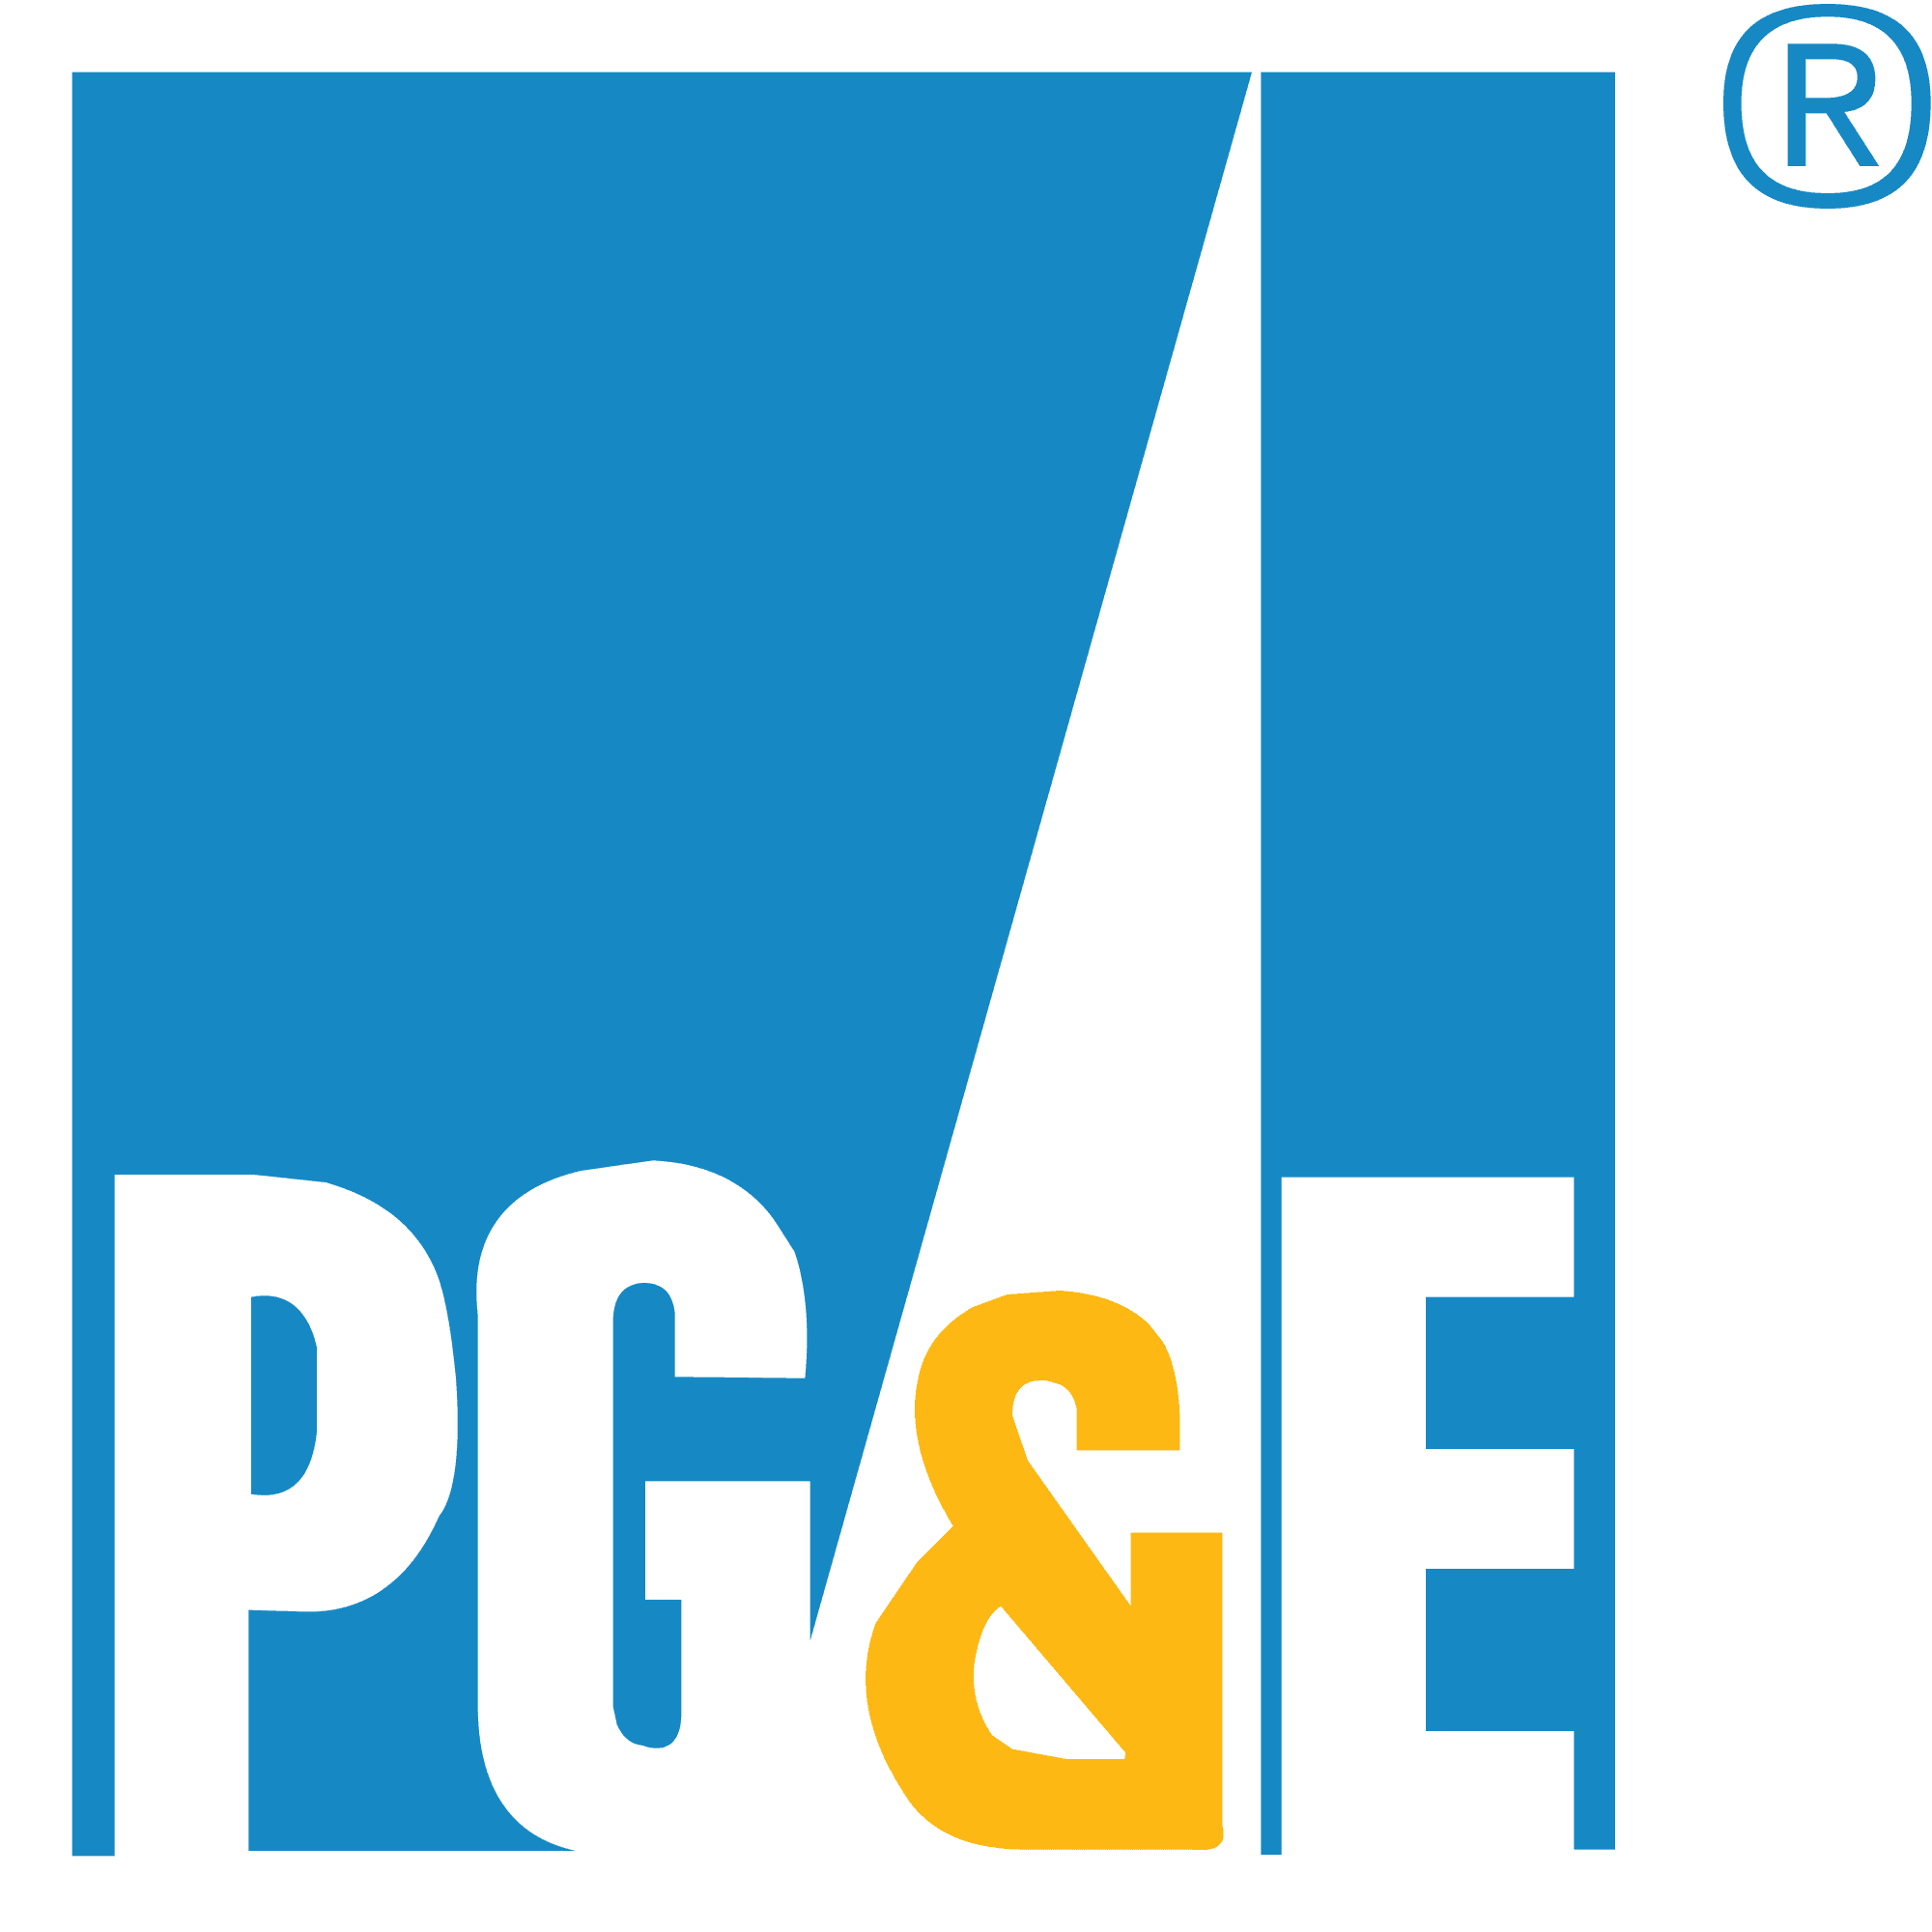 Pacific_Gas_and_Electric_Company_(logo).svg